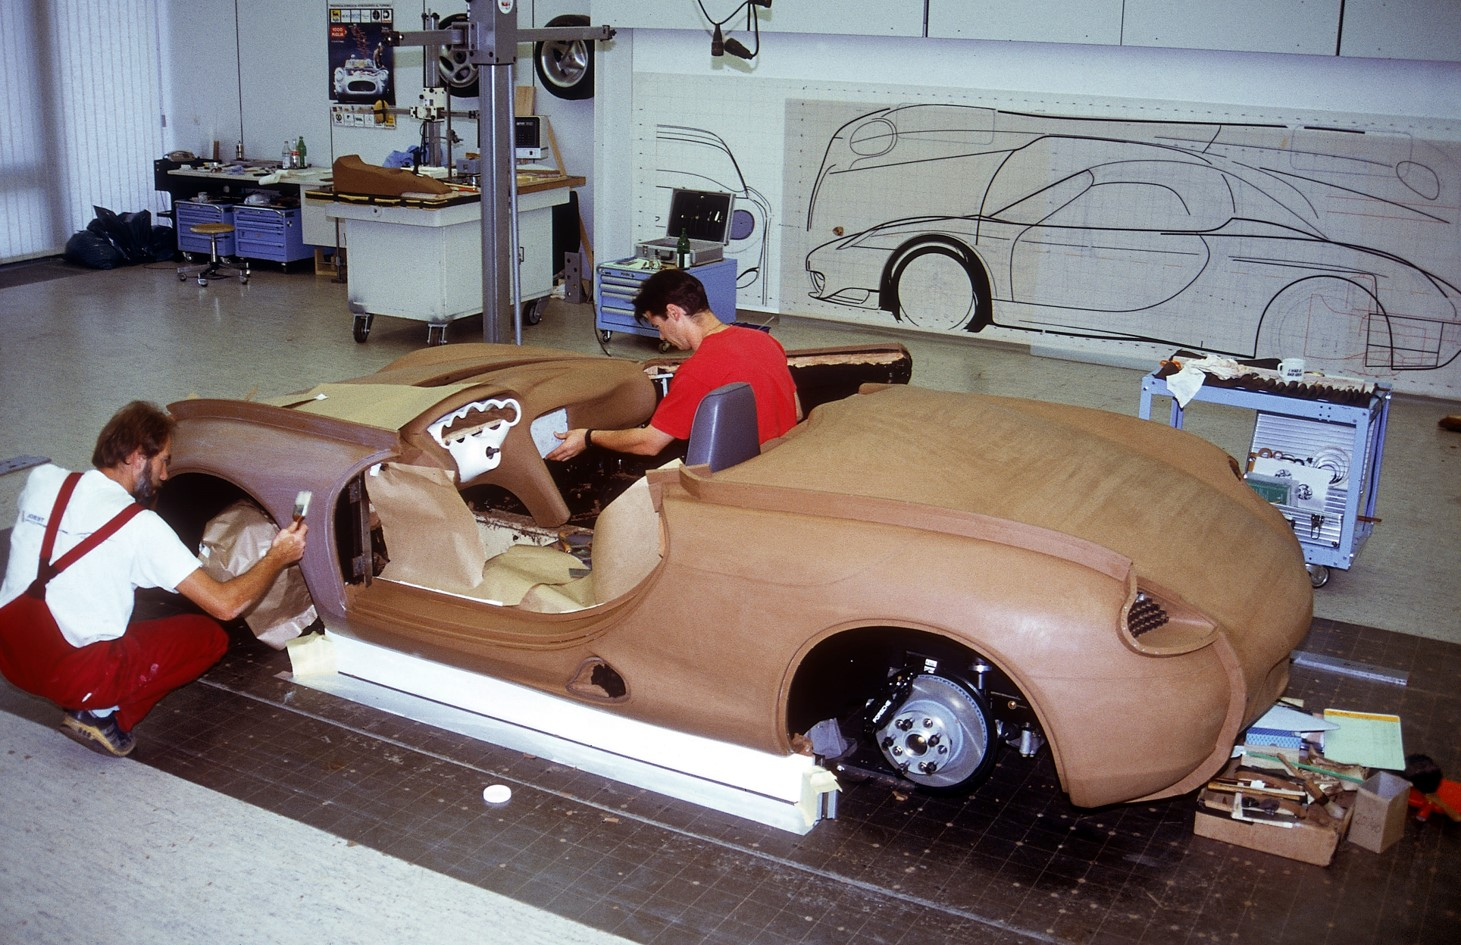 In a later photo of the clay model, the Boxster concept's five-gauge instrument panel, rocker panel air intake, and distinctive taillights are visible.